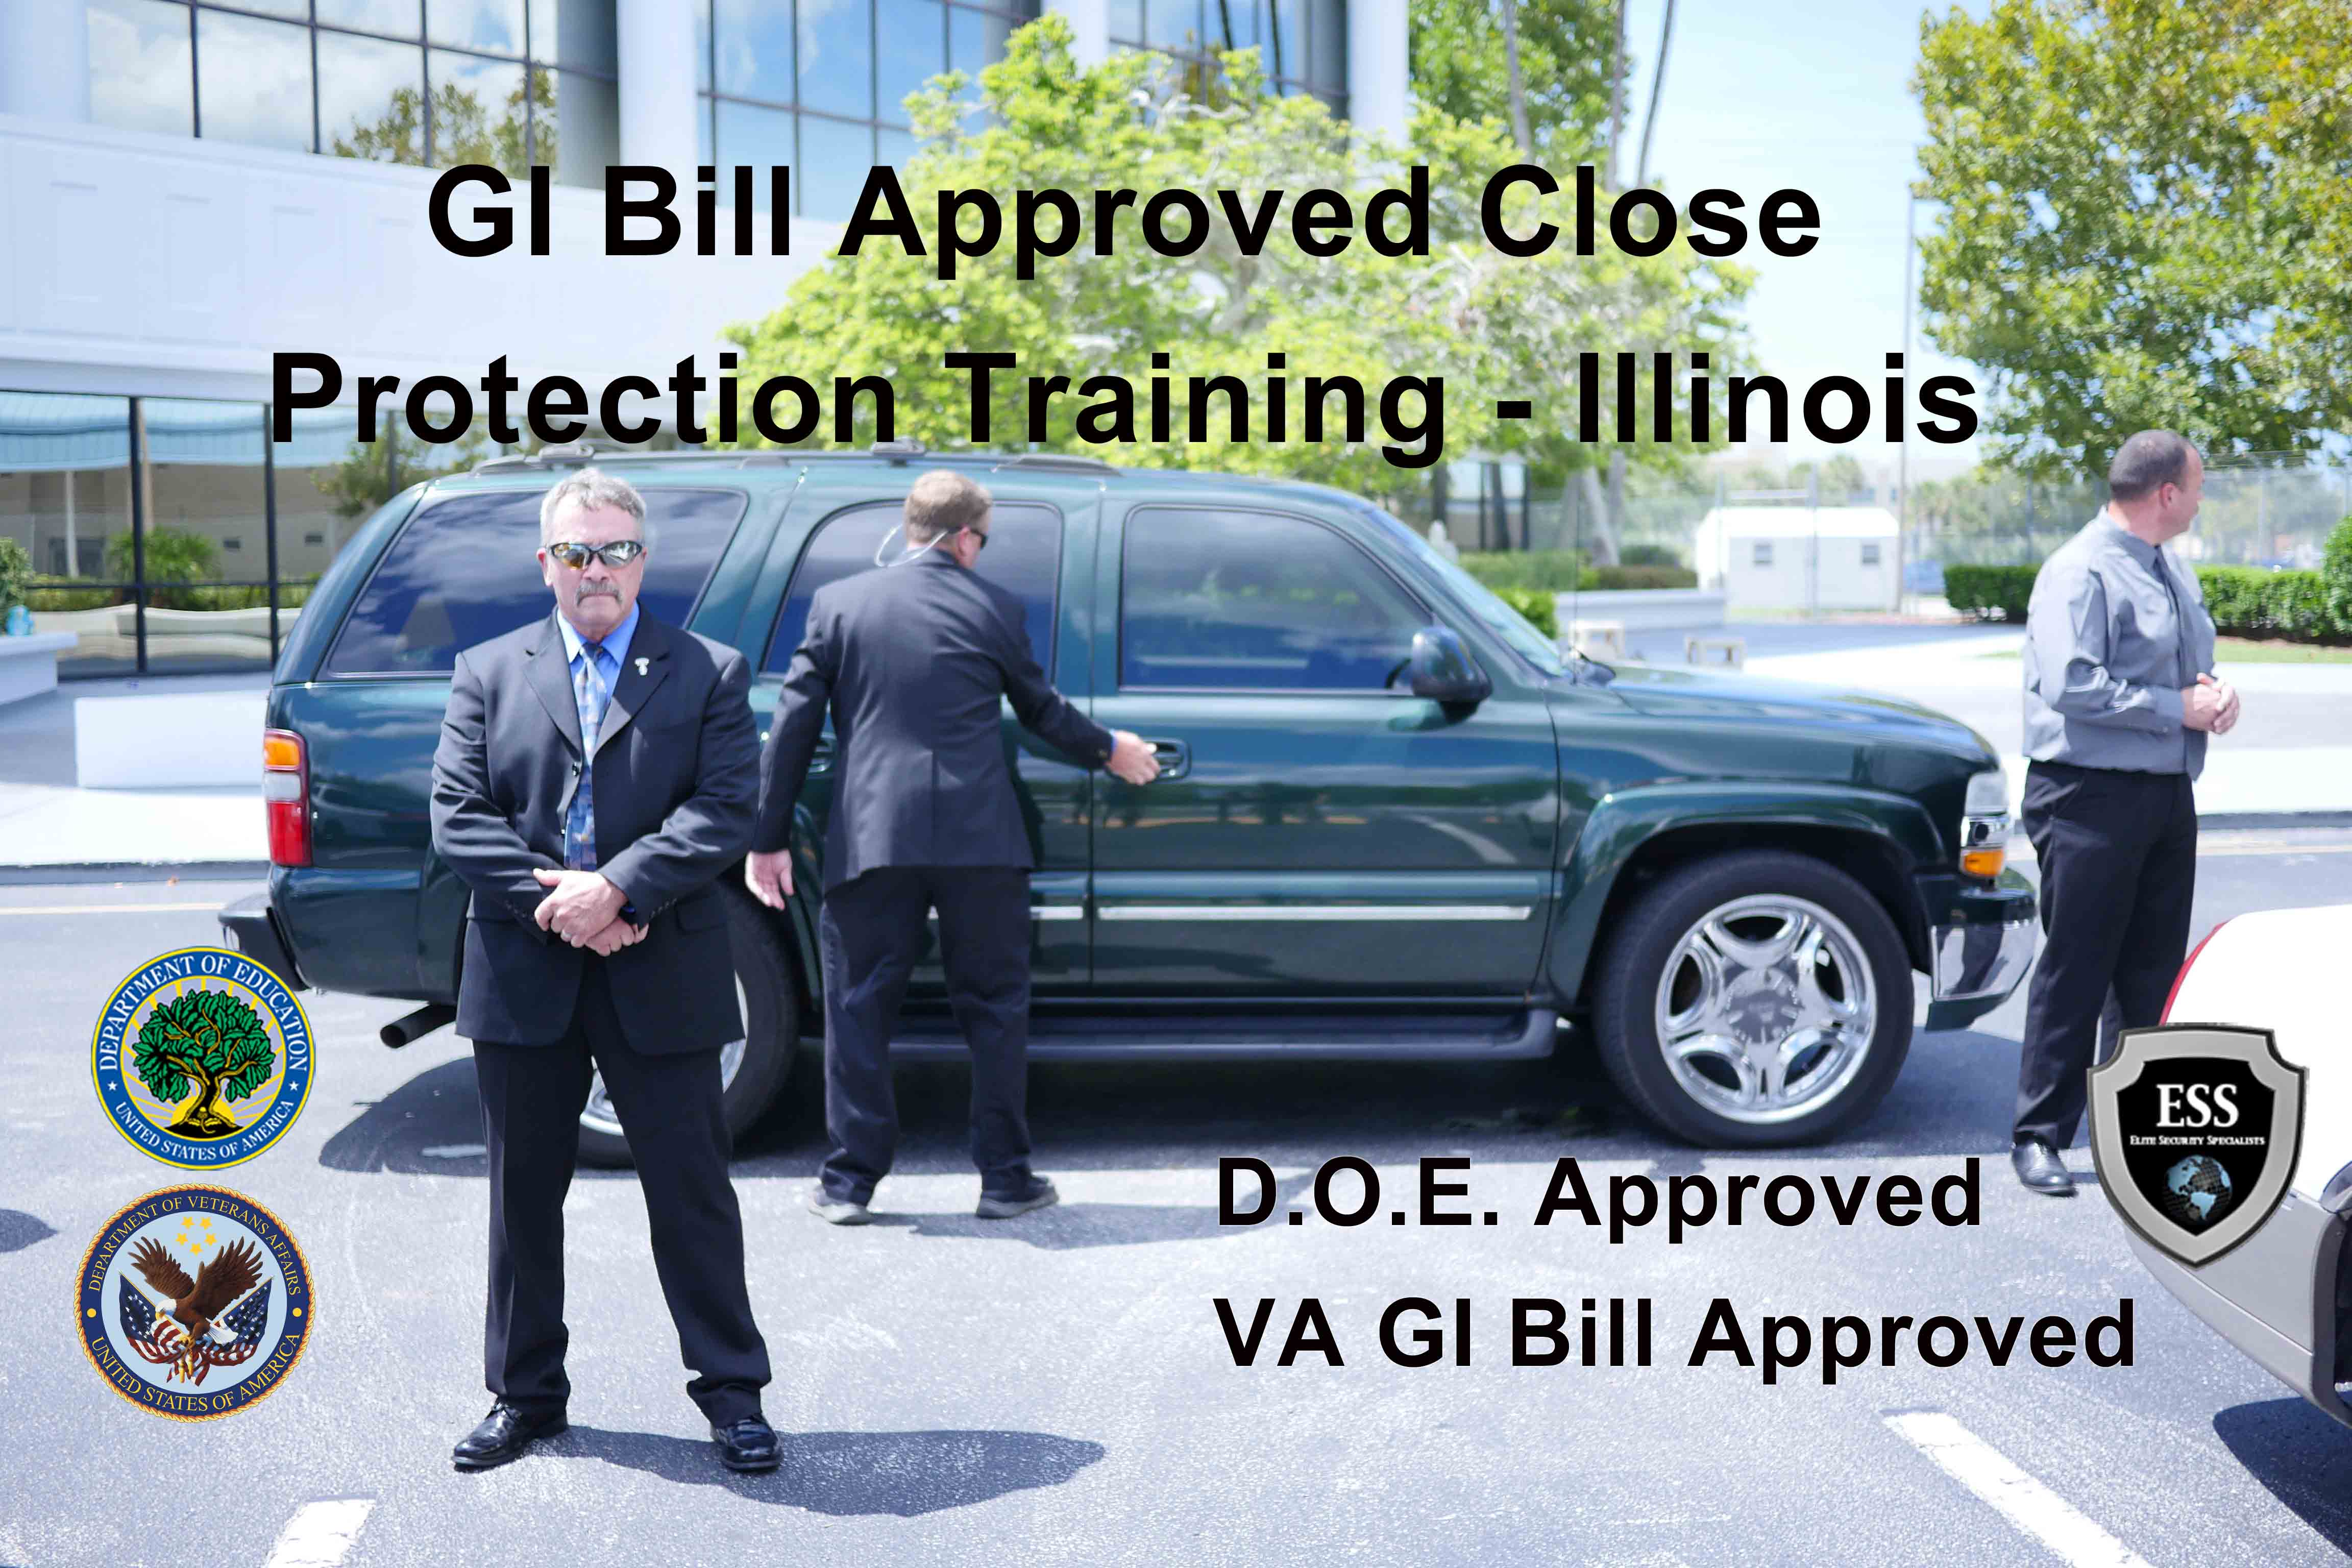 GI Bill Approved Bodyguard Training - Illinois